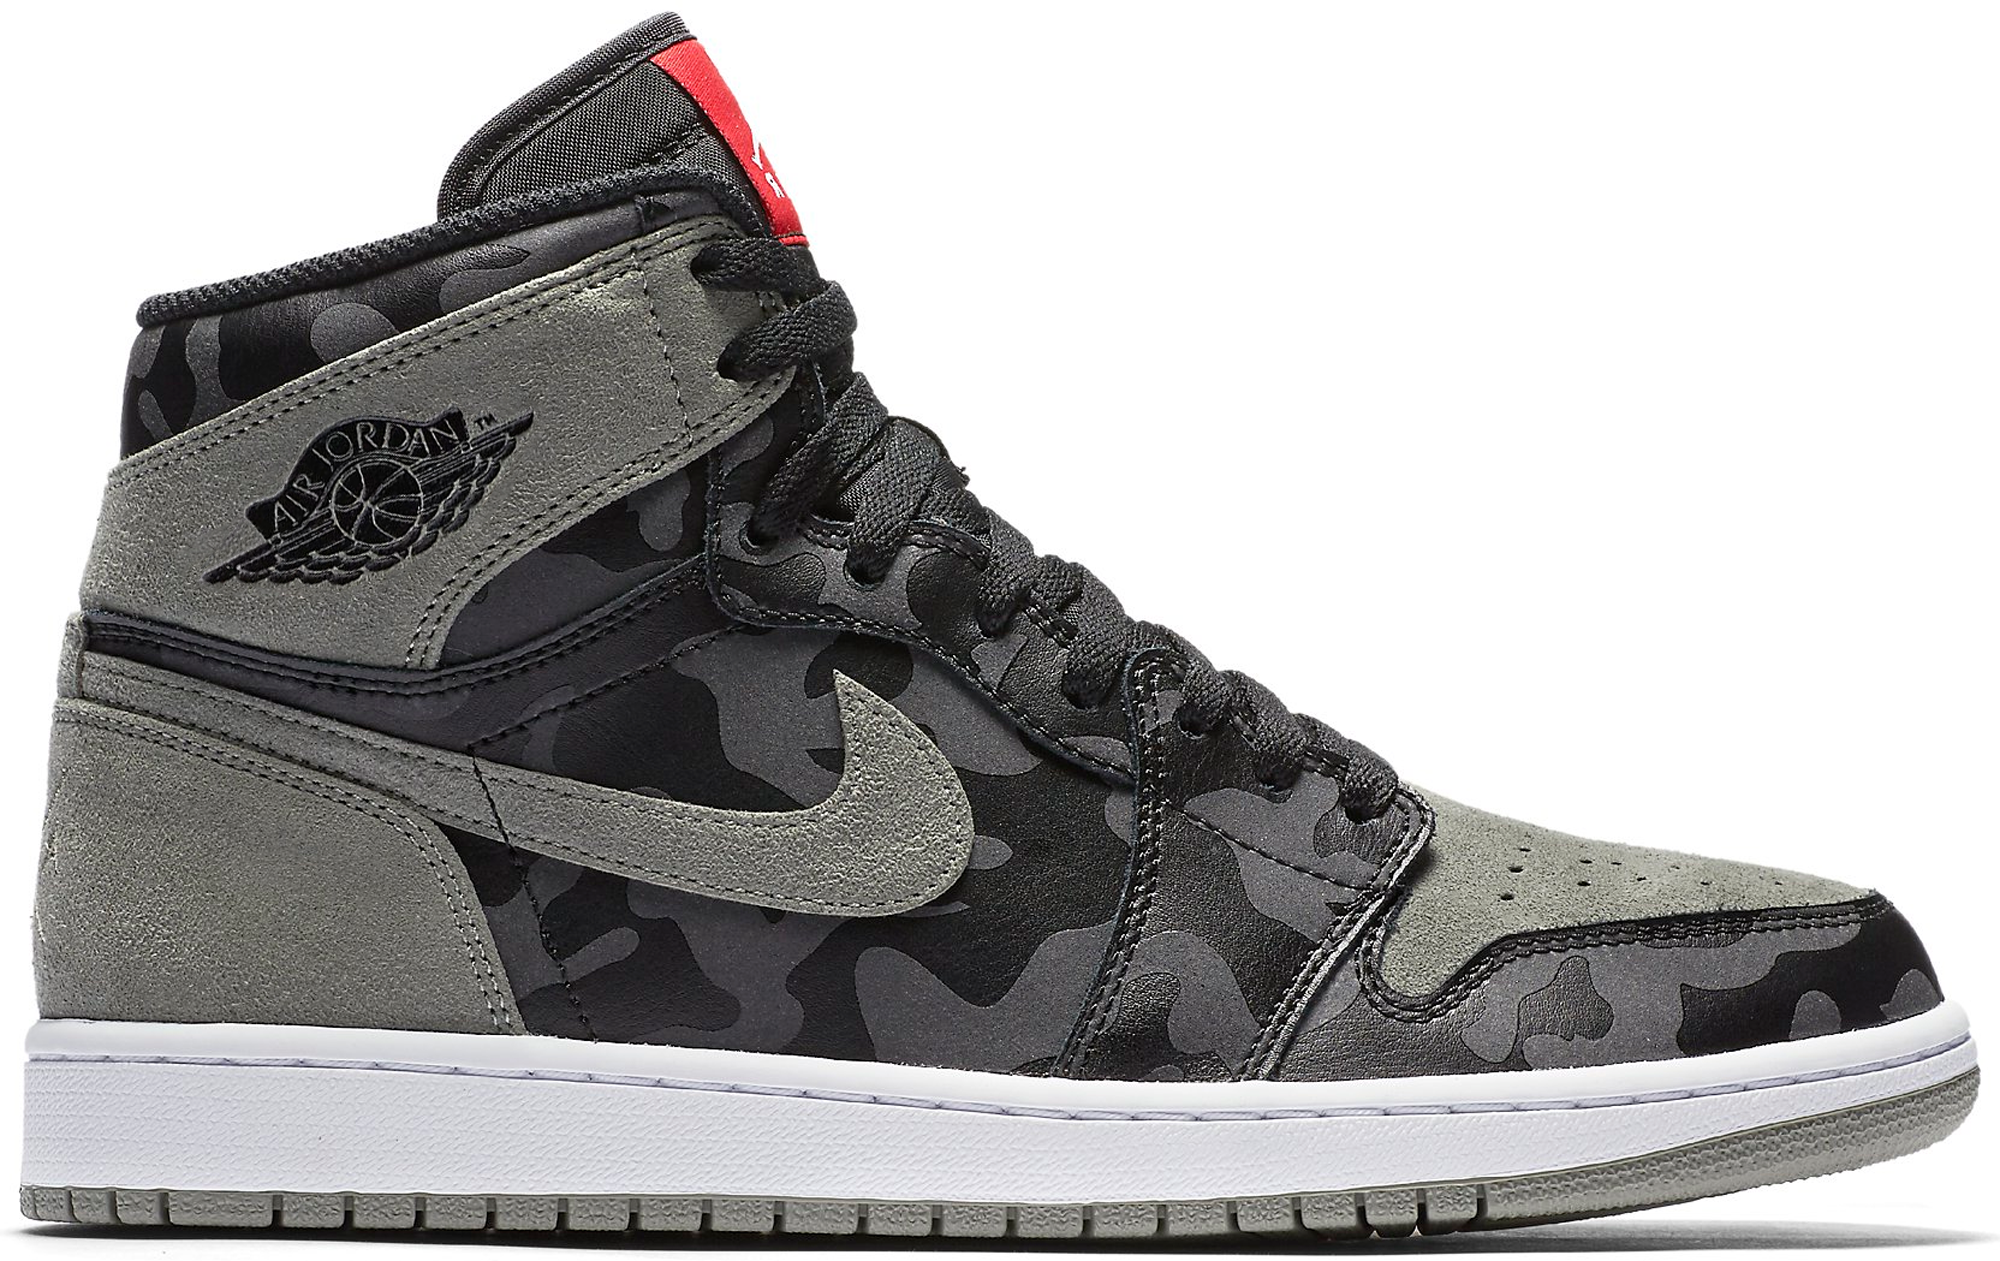 Jordan 1 Retro High Camo 3M Shadow